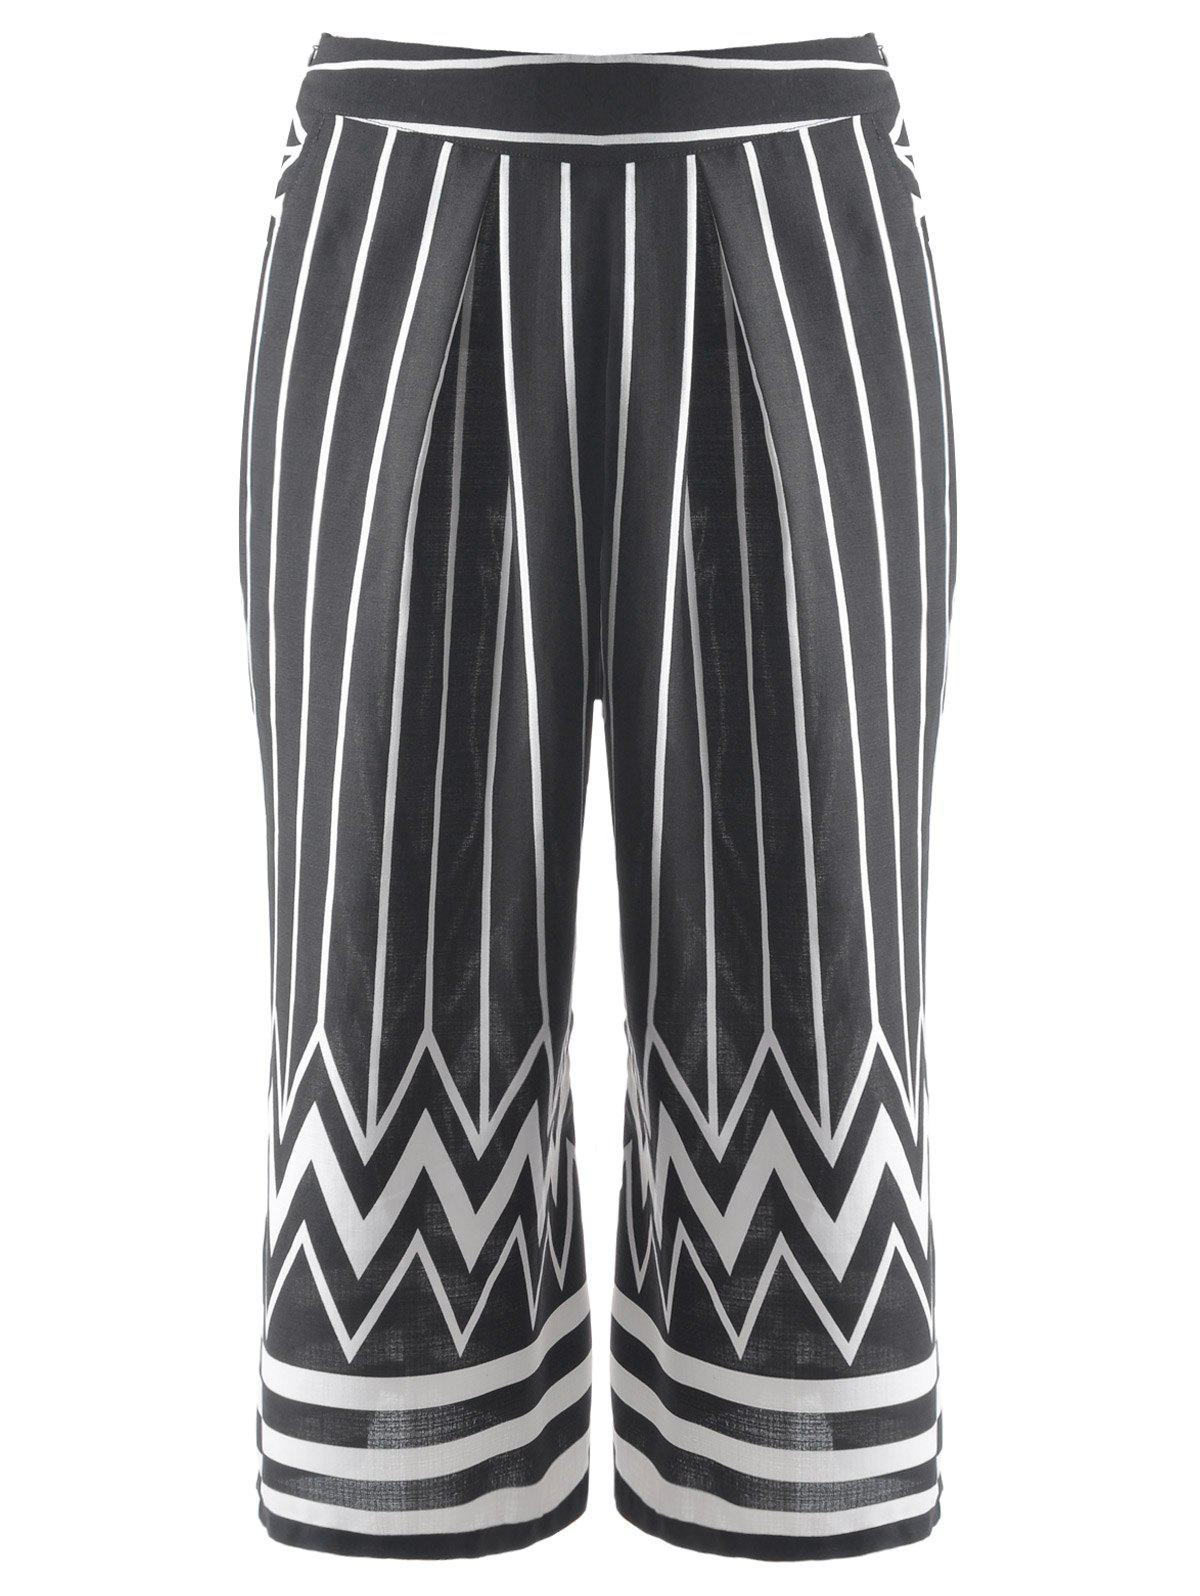 Fashionable Women's Striped Zig Zag Cropped Pants